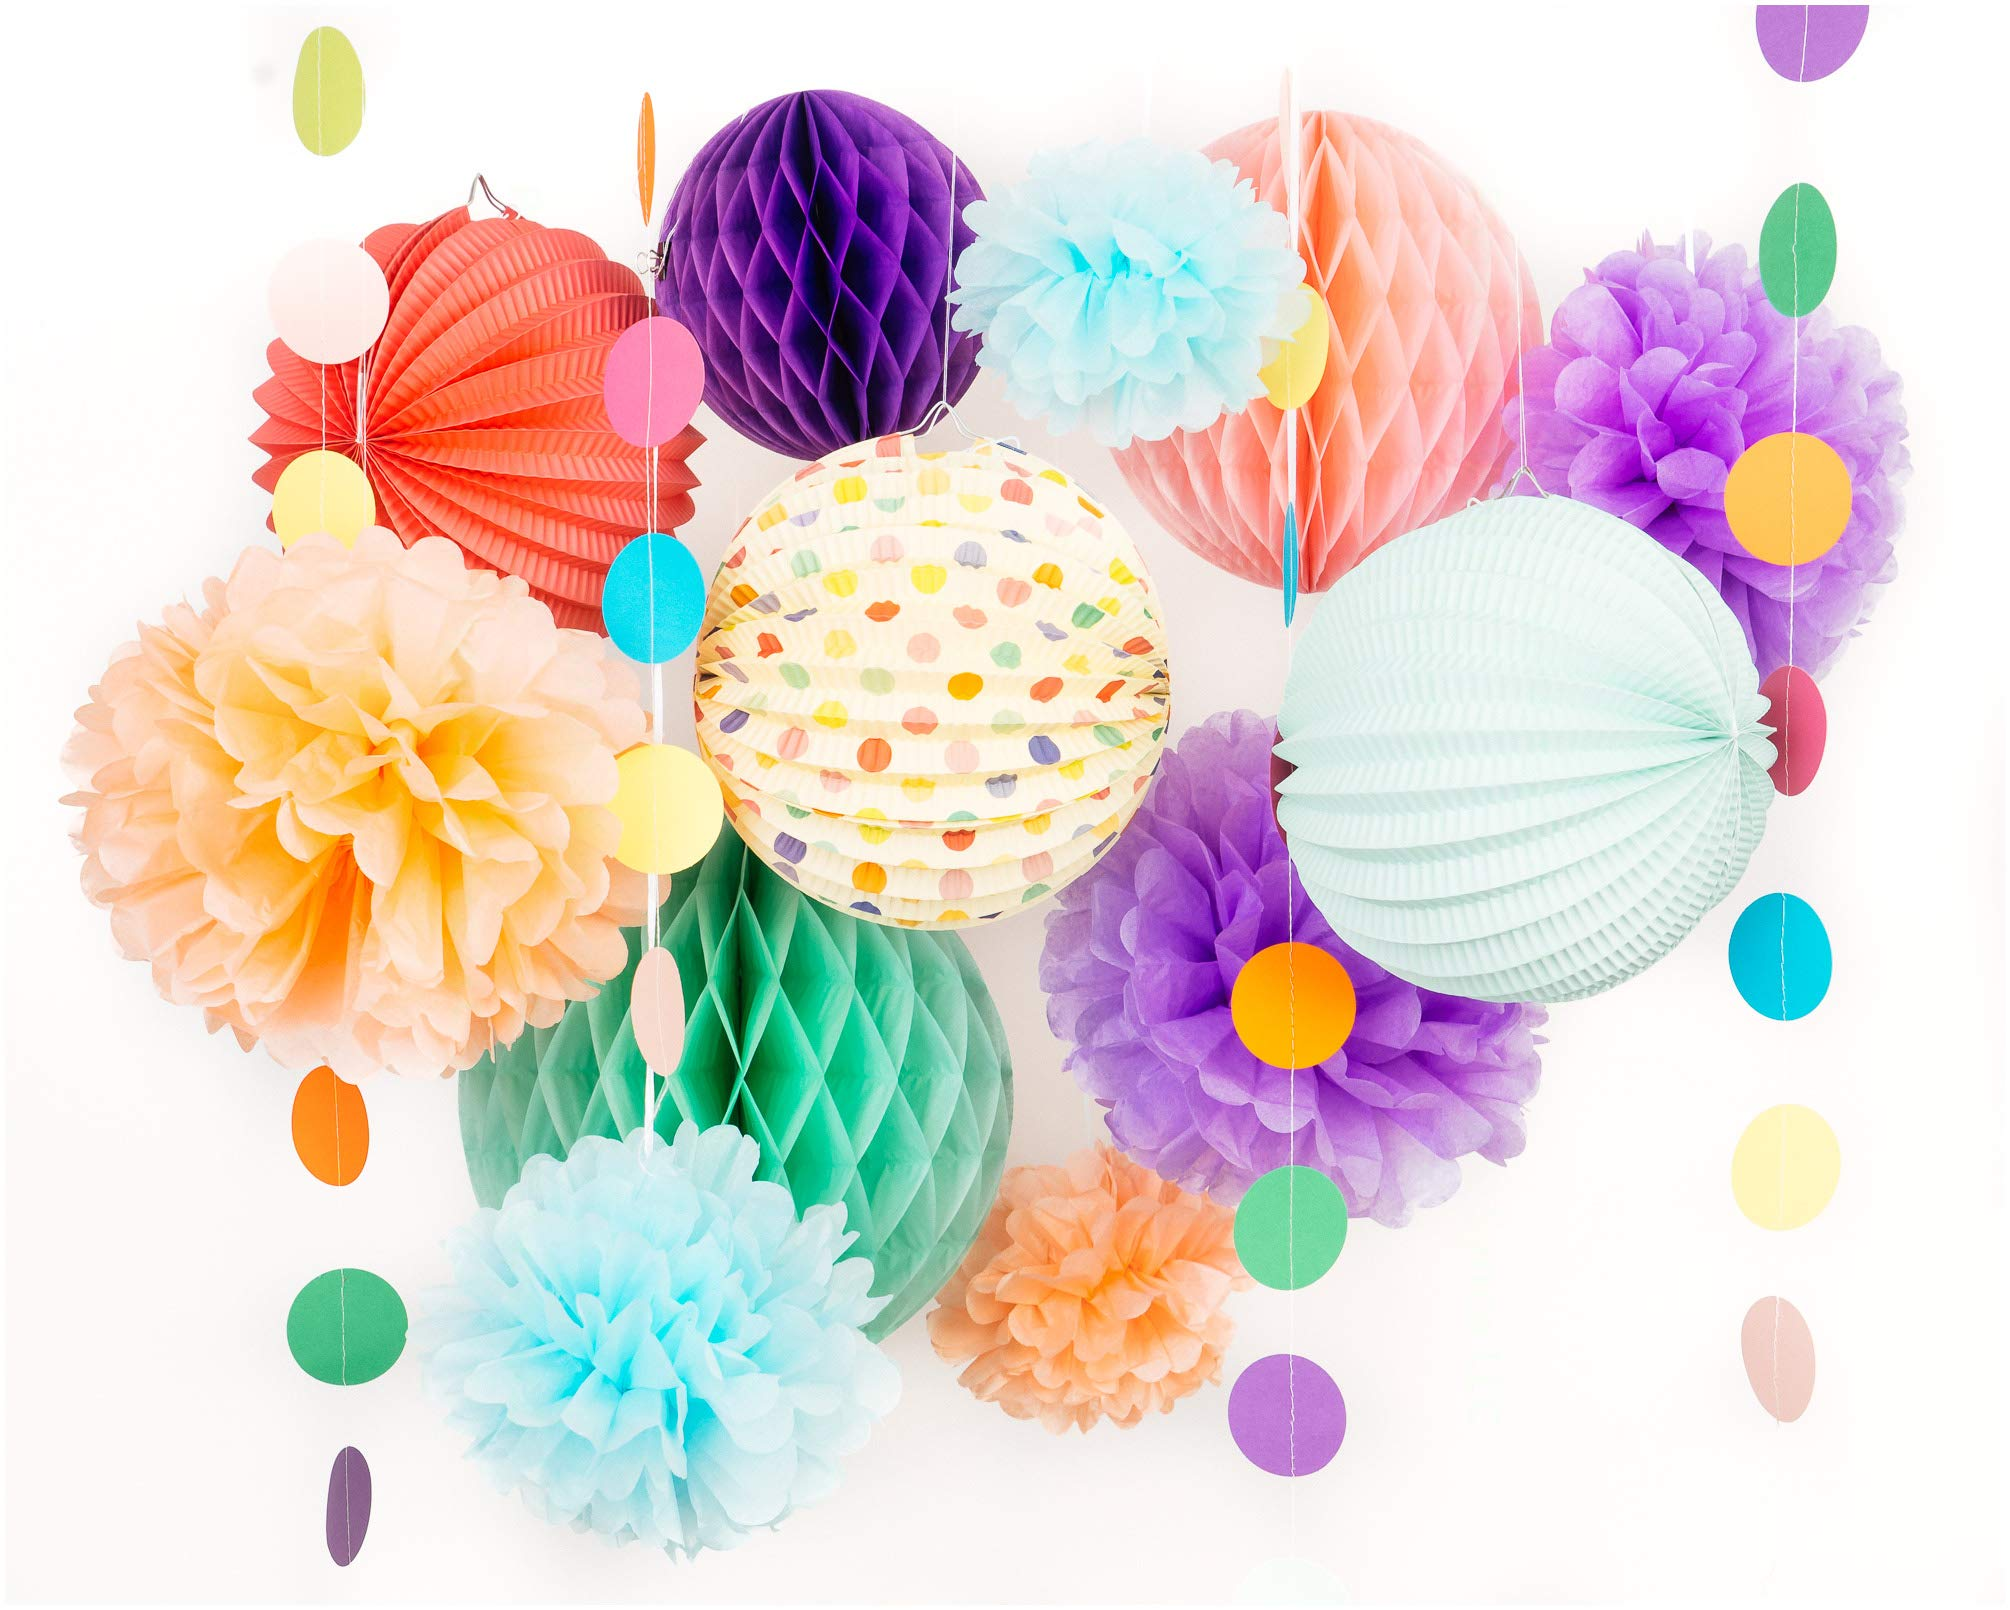 PapaKit Premium Paper Decoration Set - Pom Pom, Honeycomb and Accordion Lantern (Festive Colors) Birthday Party Baby Shower Bride to Be Engagement Wedding Events